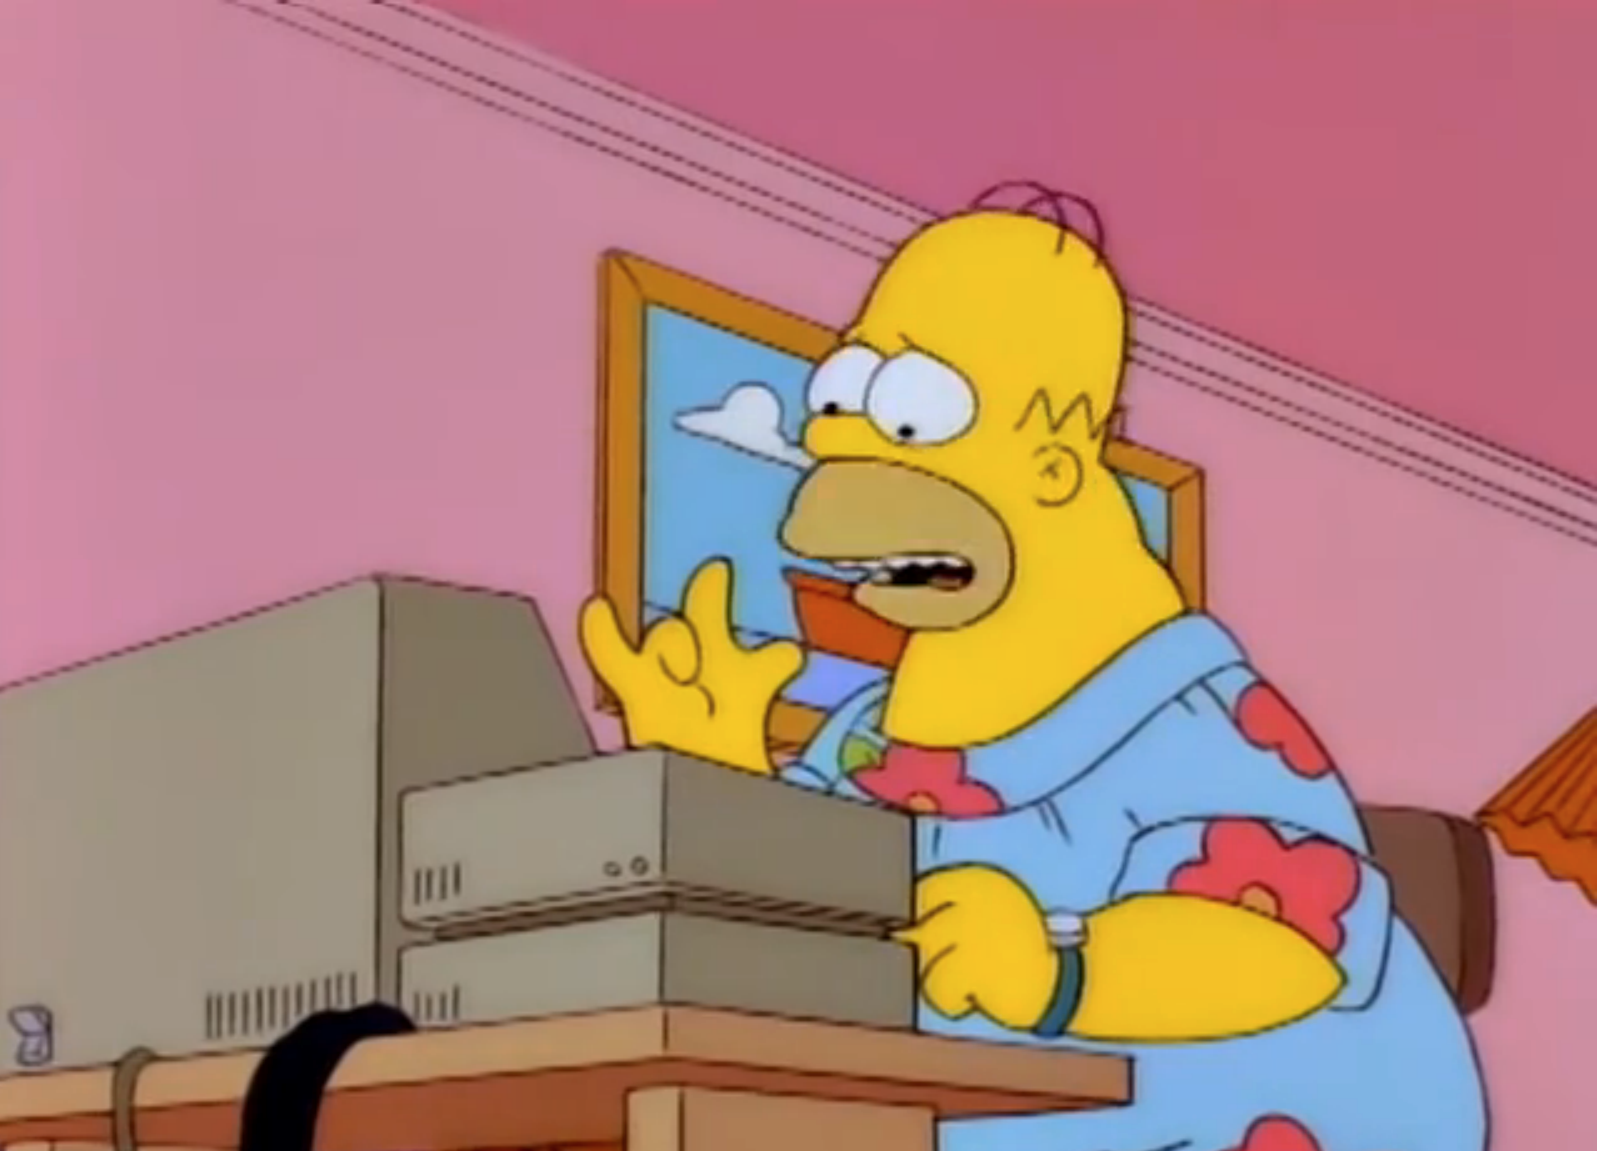 http://cdn.arstechnica.net/wp-content/uploads/2013/12/homer-slow-internet.png